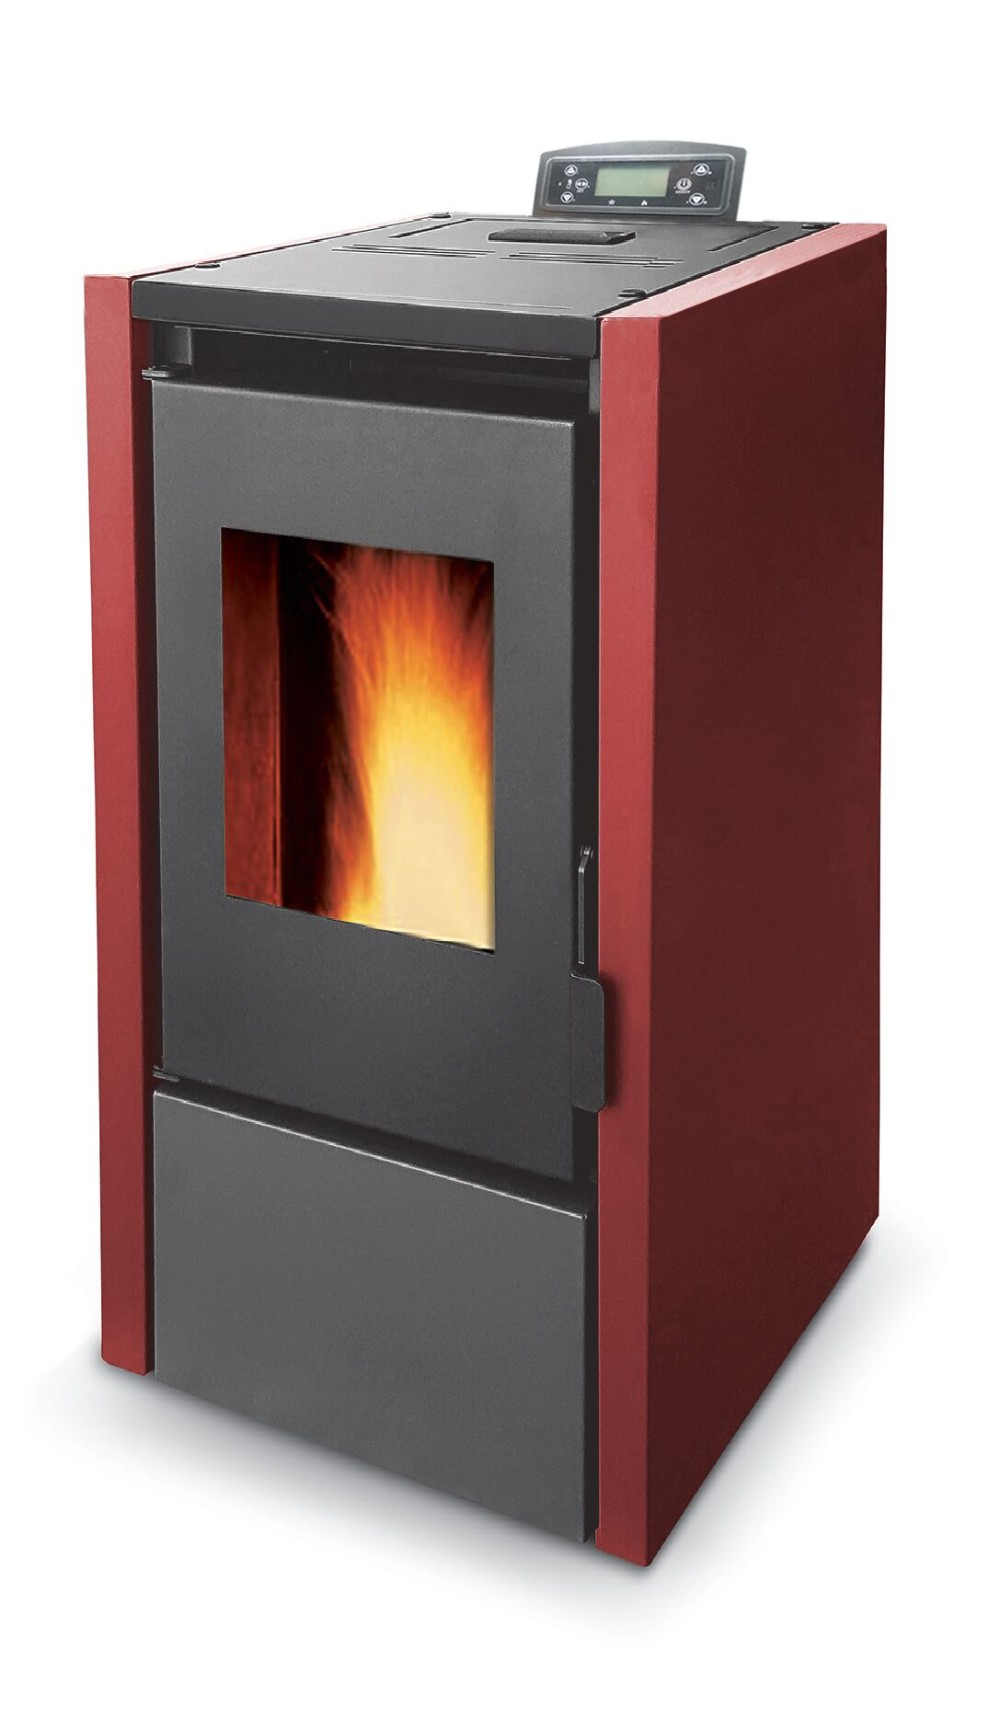 French Style Poele A Pellets Stoves For Sale - Buy ...